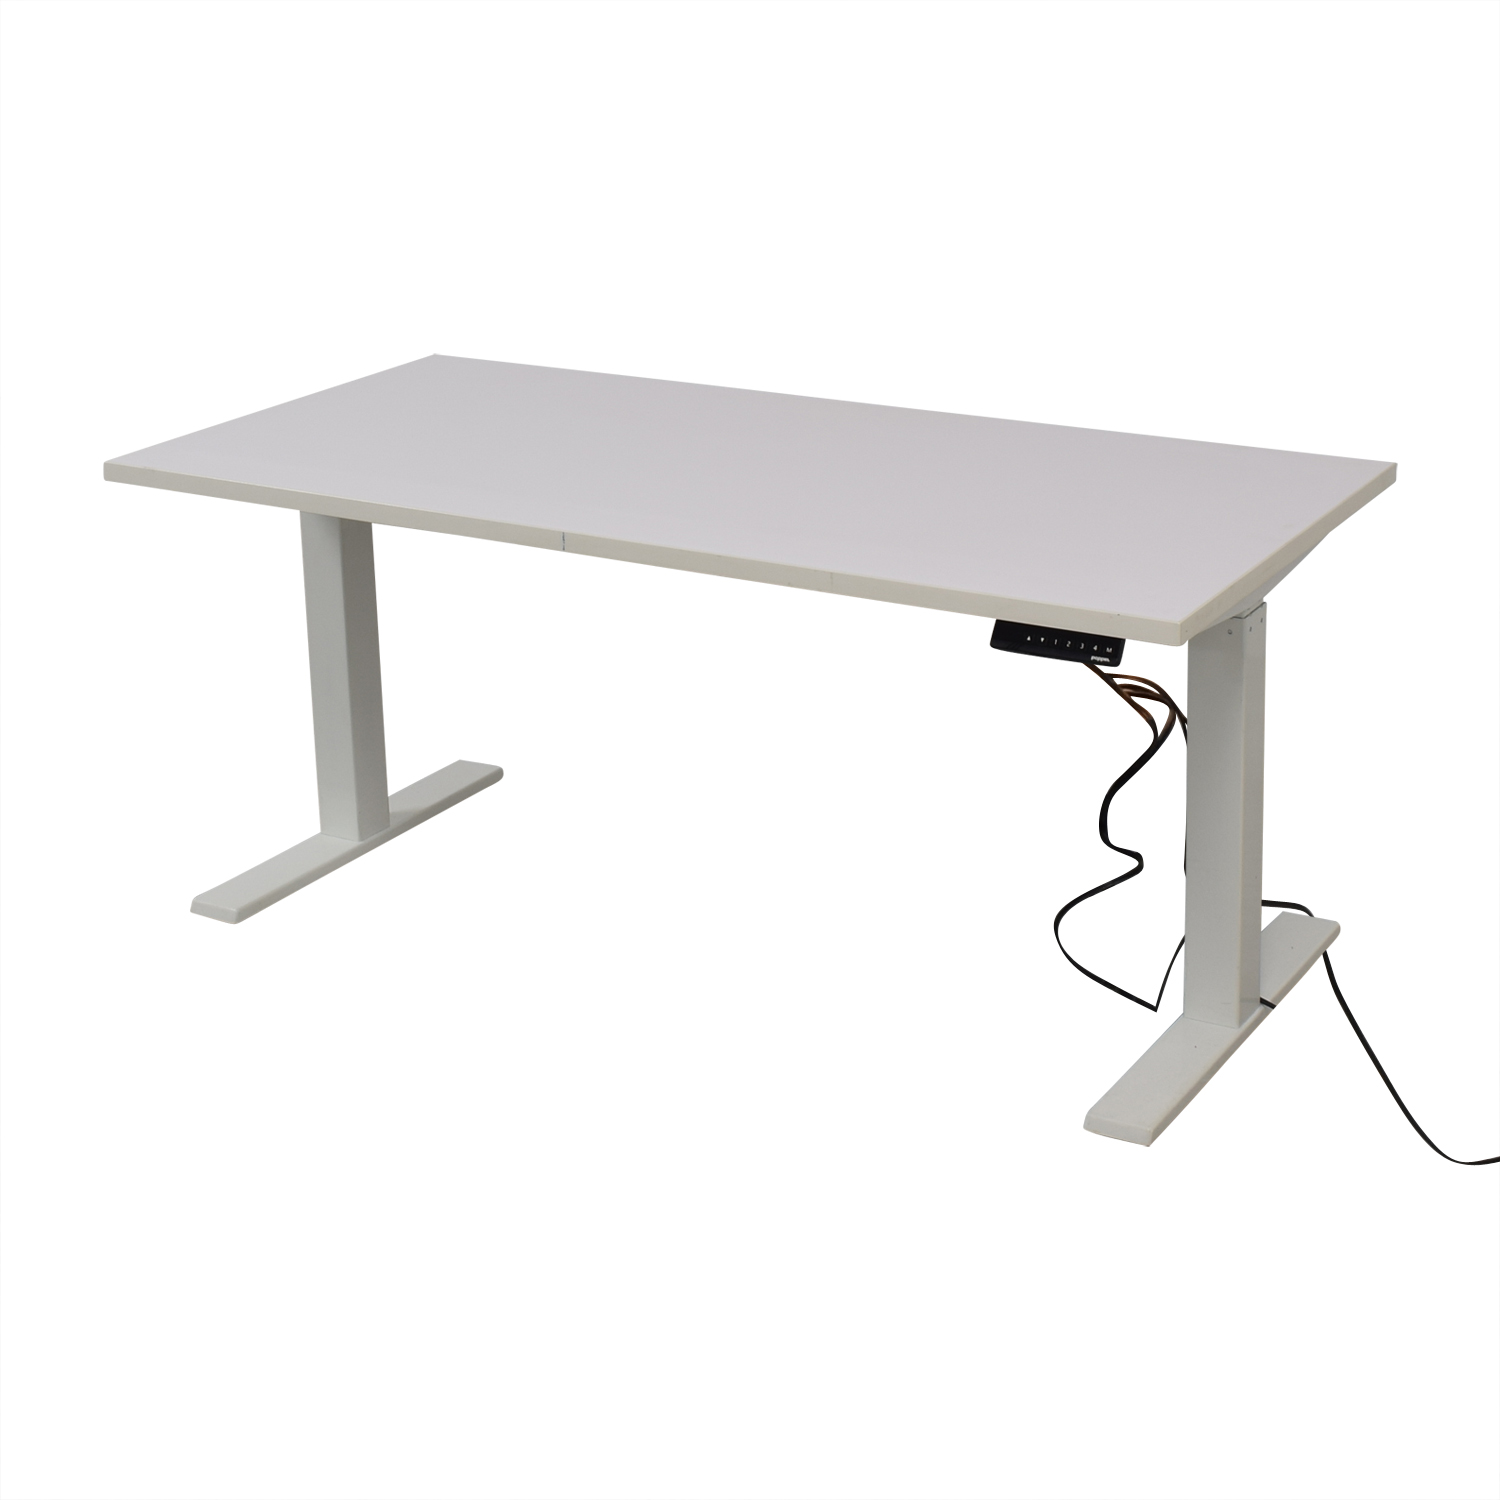 Poppin Poppin Series L Adjustable Height Single Desk Tables